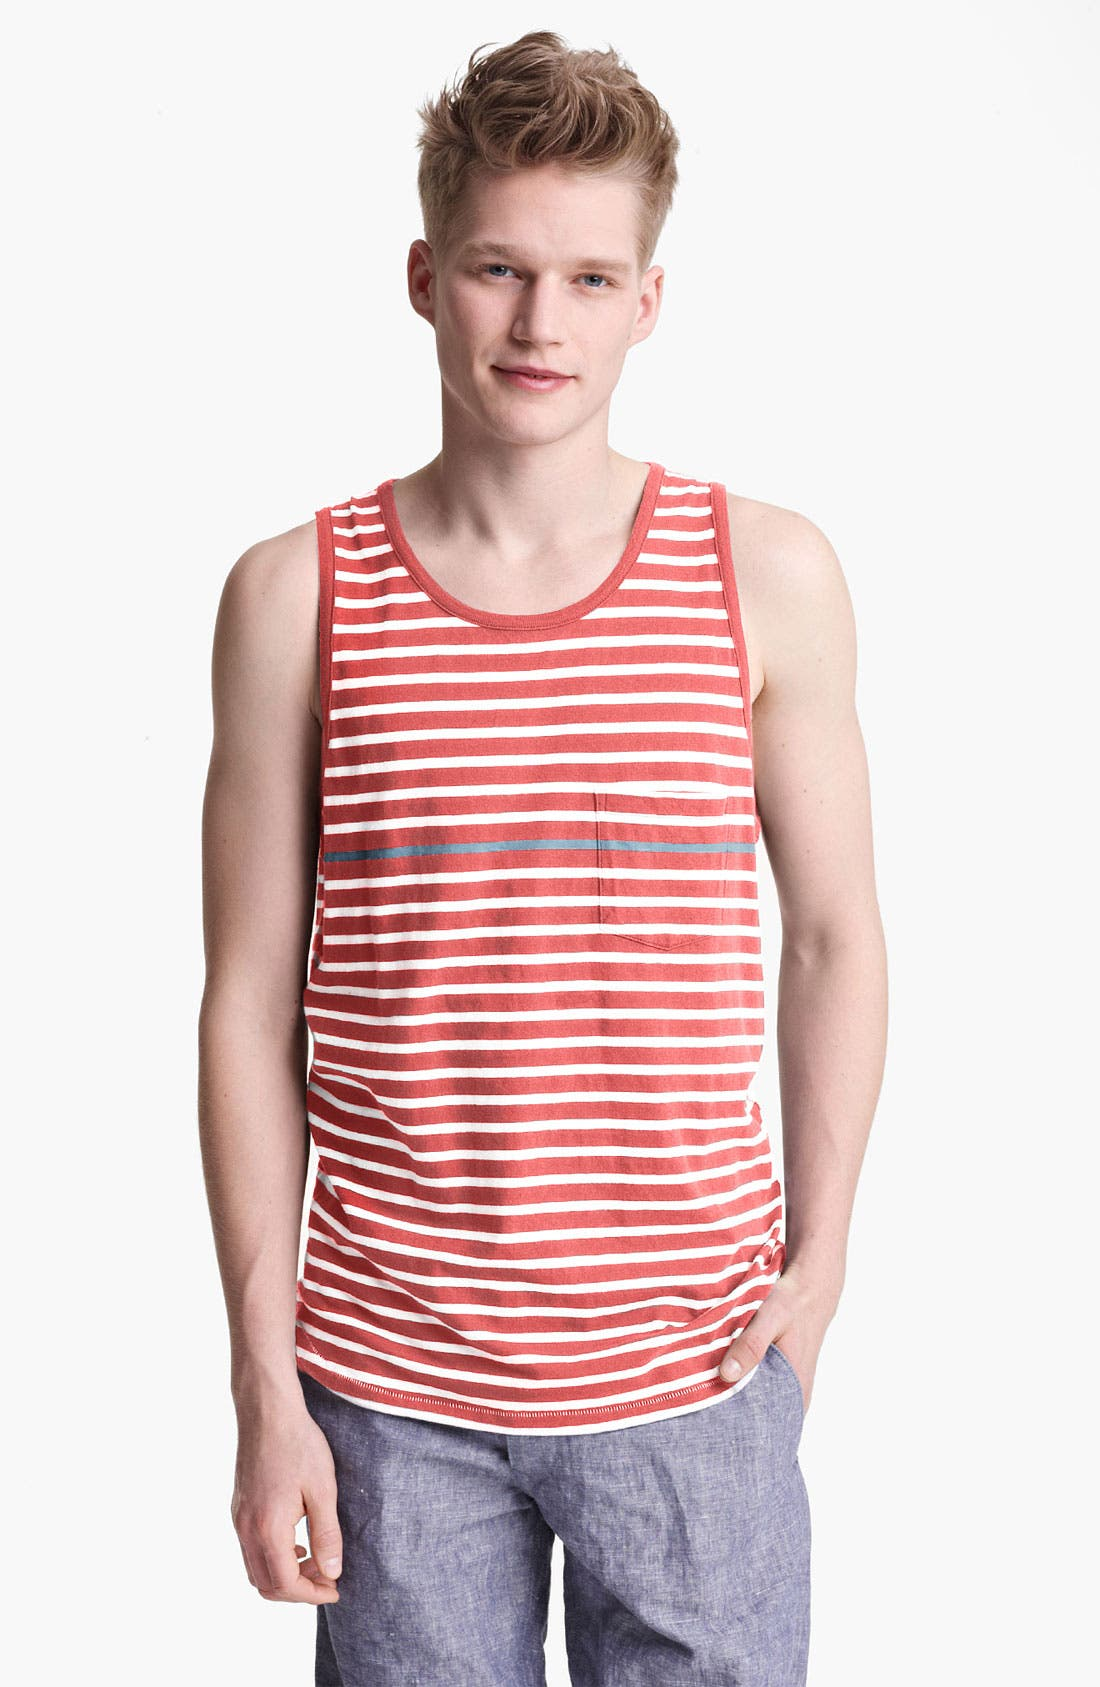 Alternate Image 1 Selected - rag & bone 'Perfect Stripe' Tank Top